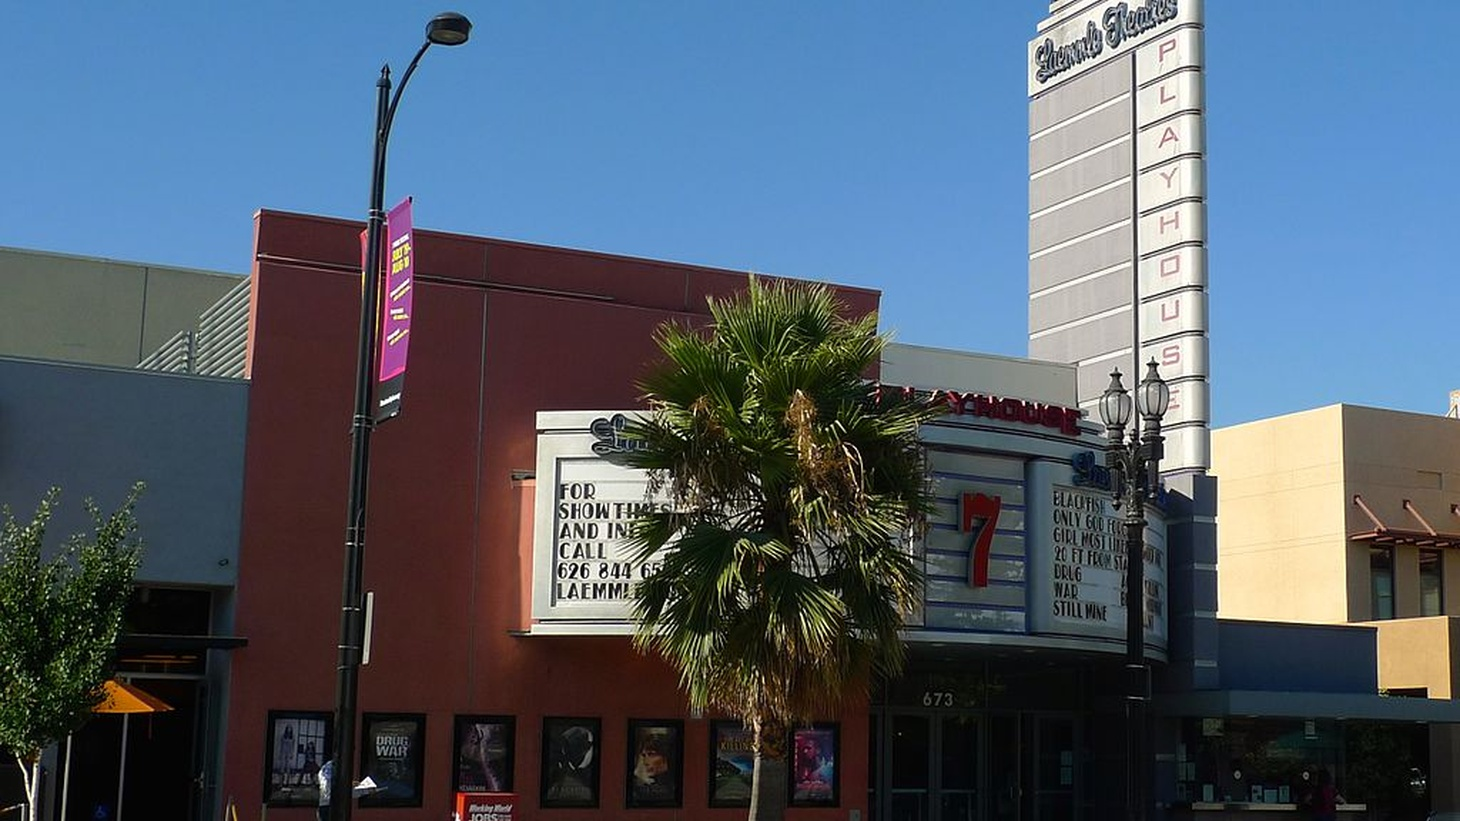 Laemmle Theatres Playhouse 7 in Pasadena, California, a theater that shows many independent films.